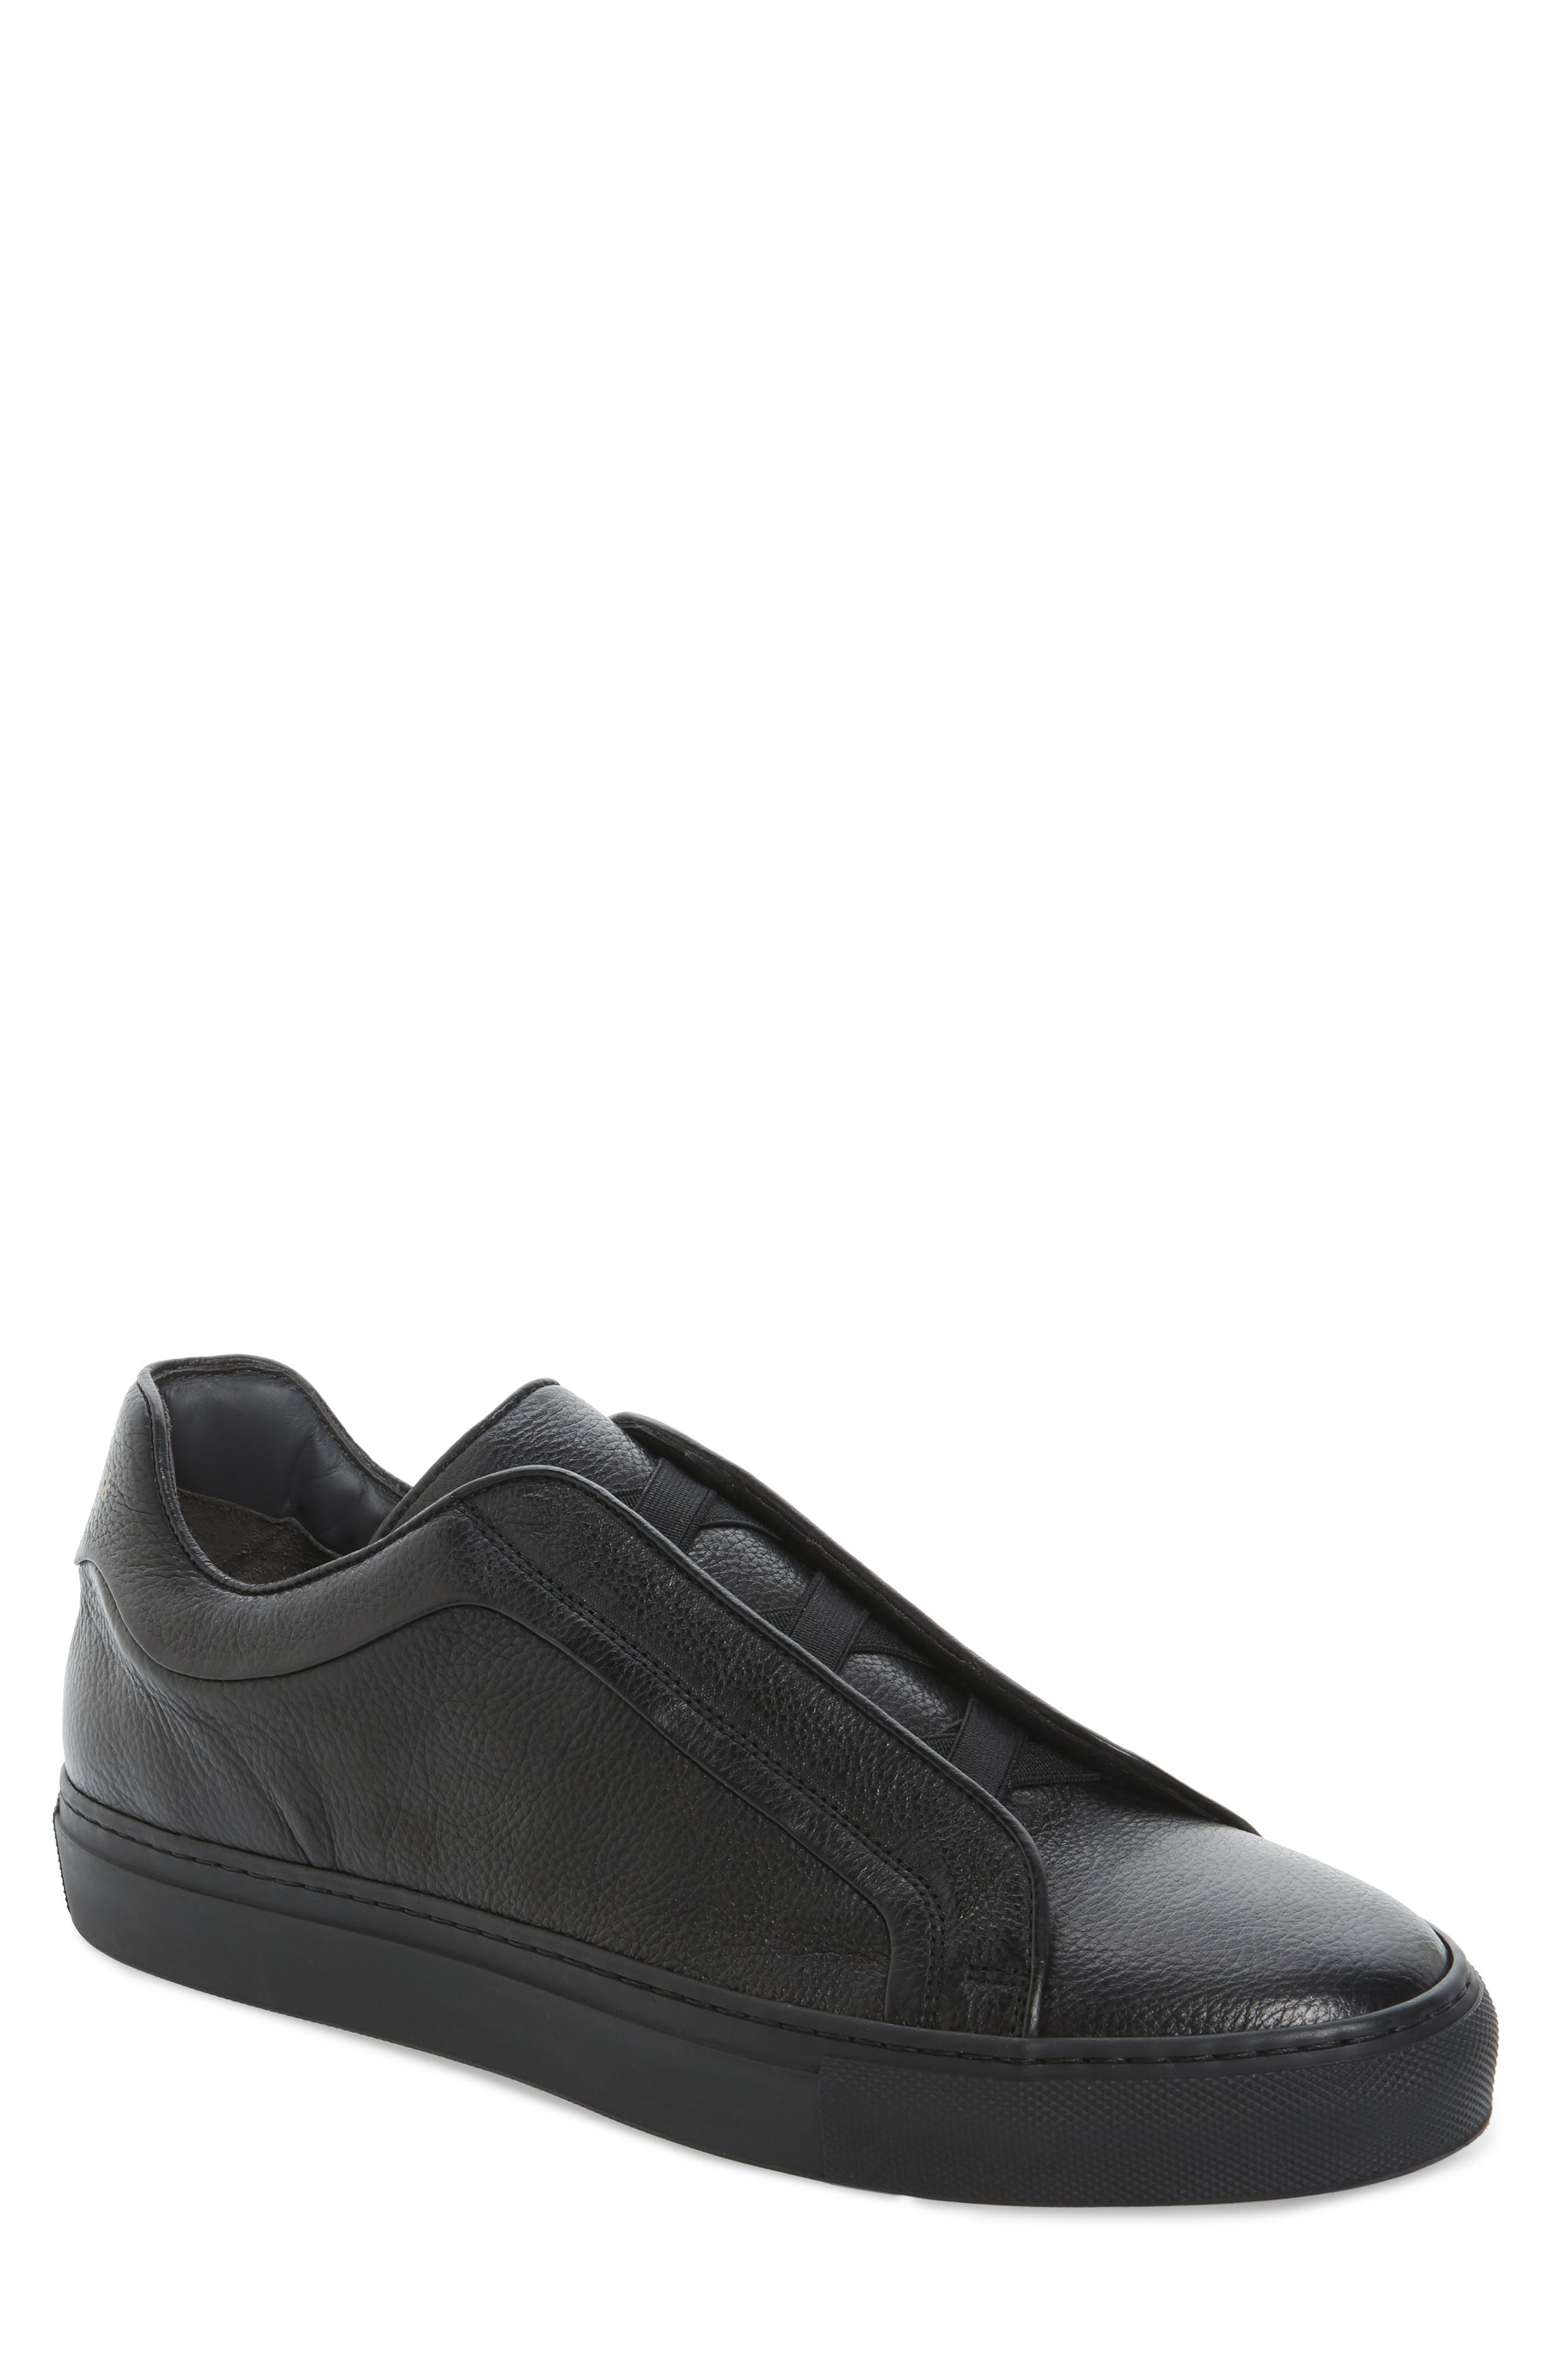 Cliff Sneaker,                             Main thumbnail 1, color,                             Black Leather